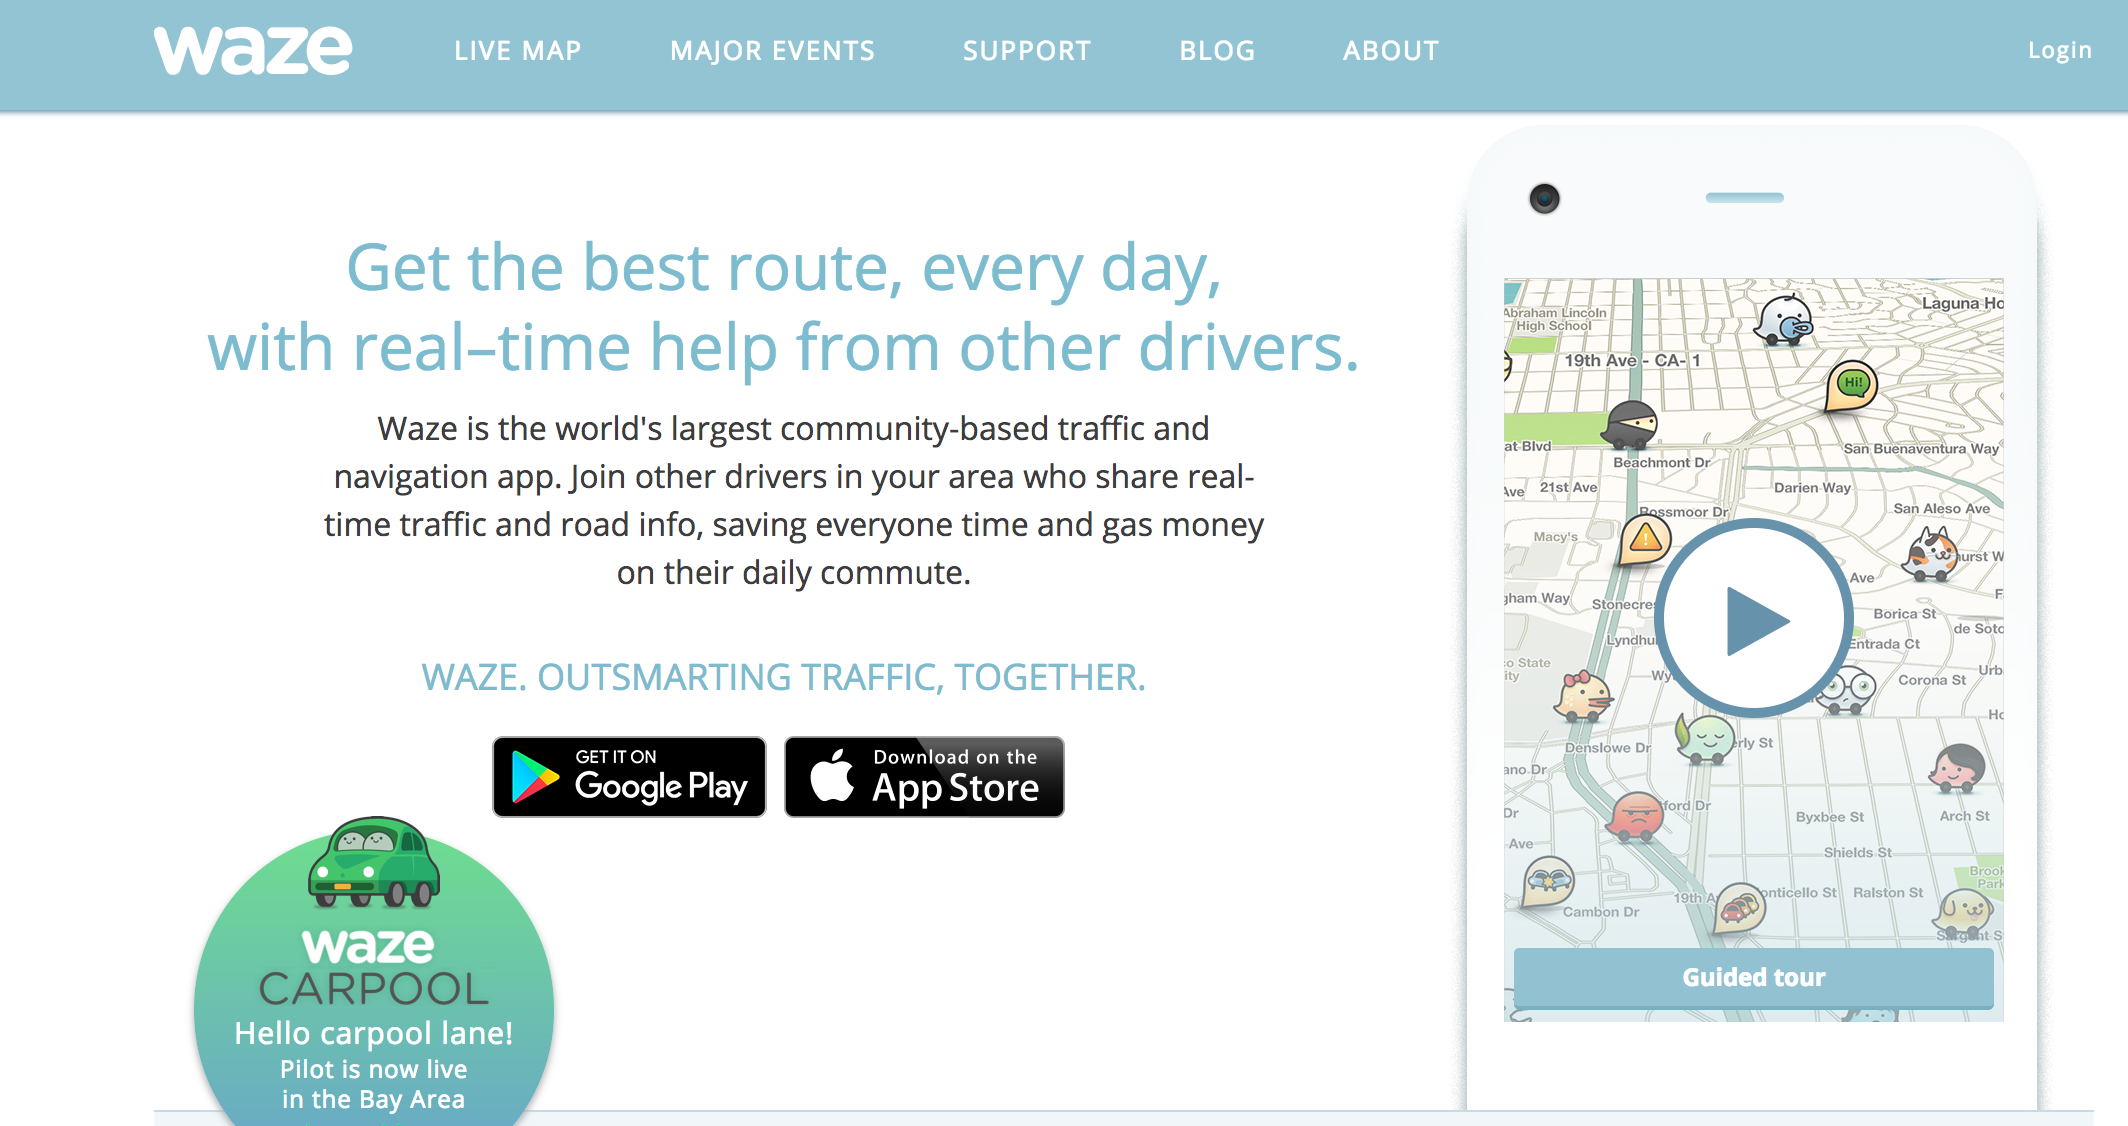 waze-offline-gps-maps-use-travelling